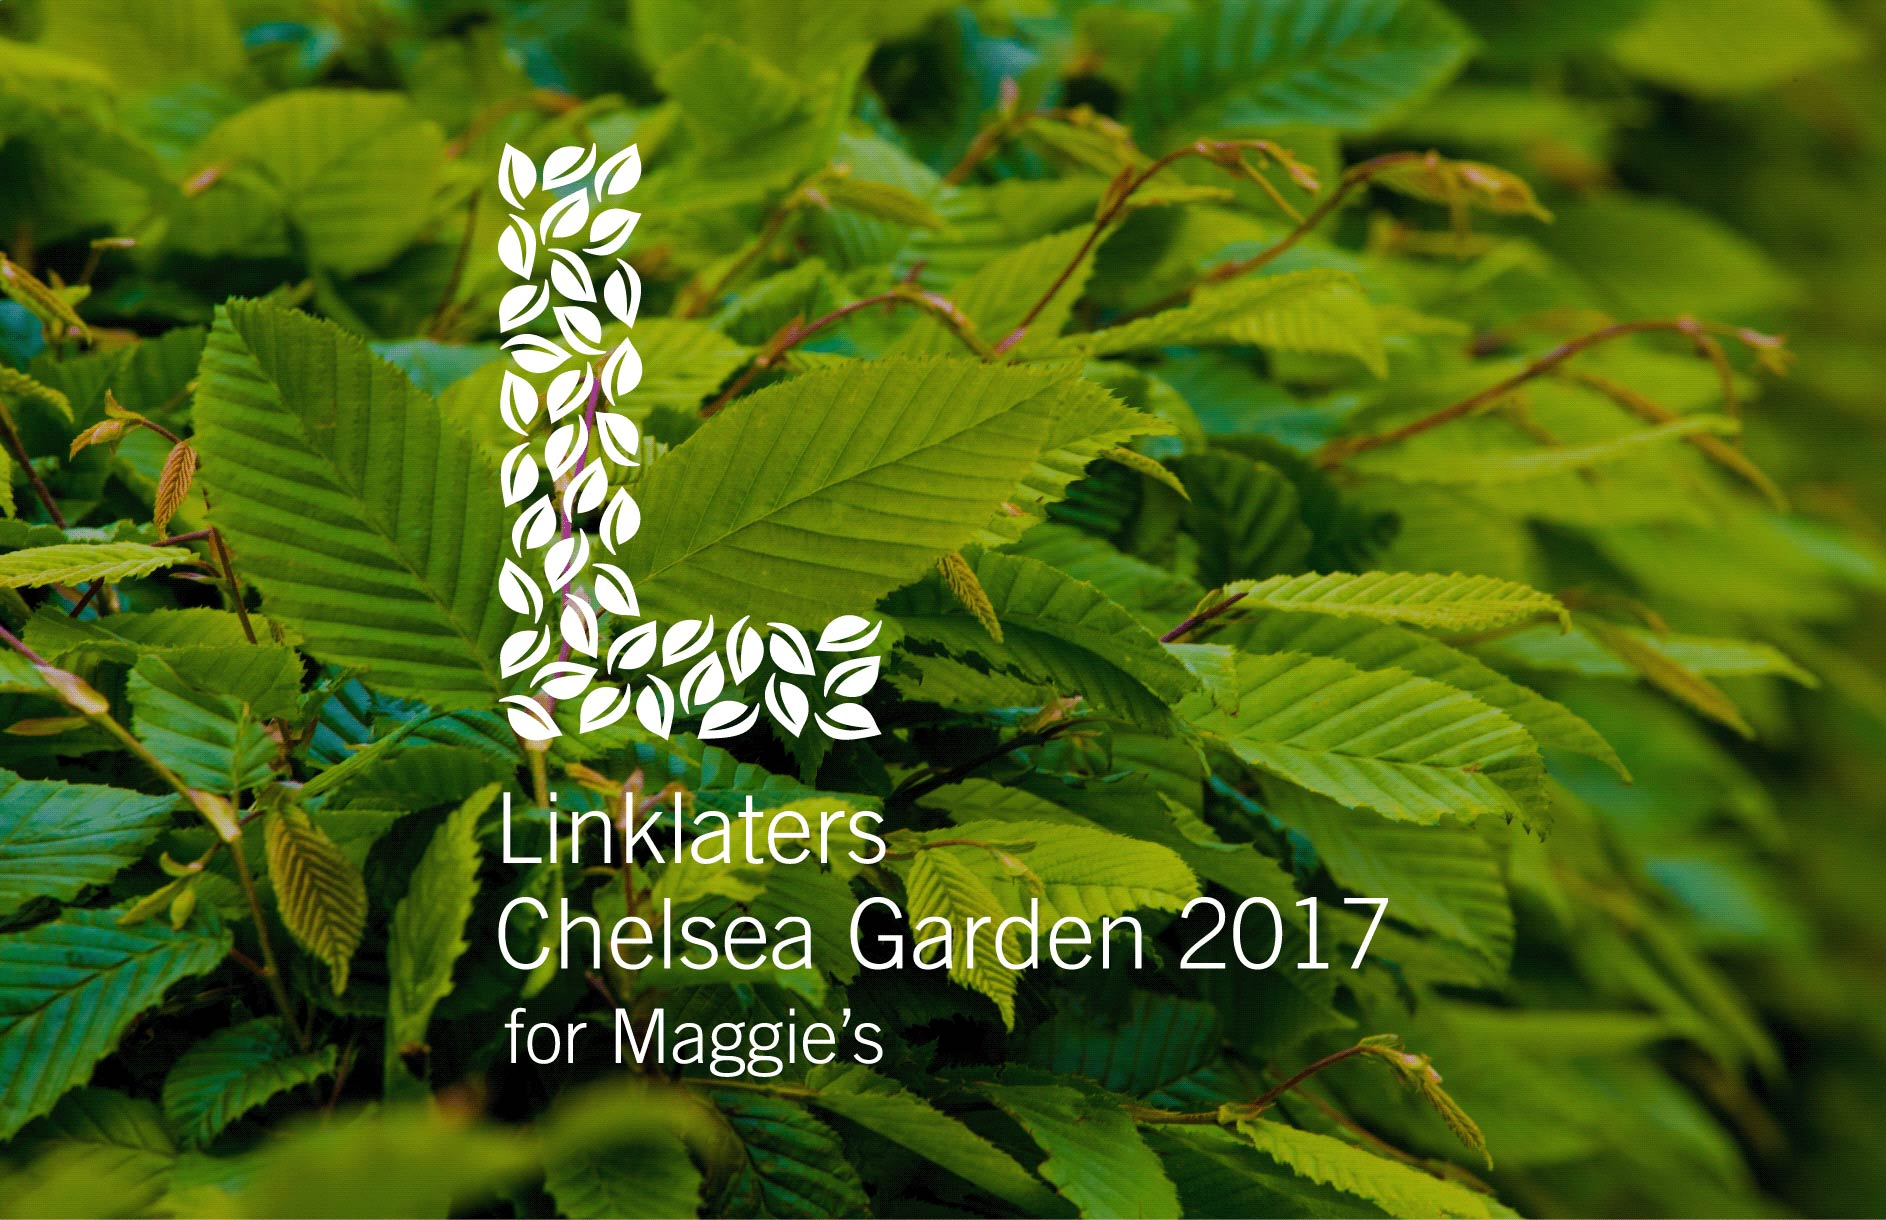 Linklaters / Chelsea Flower Show campaign